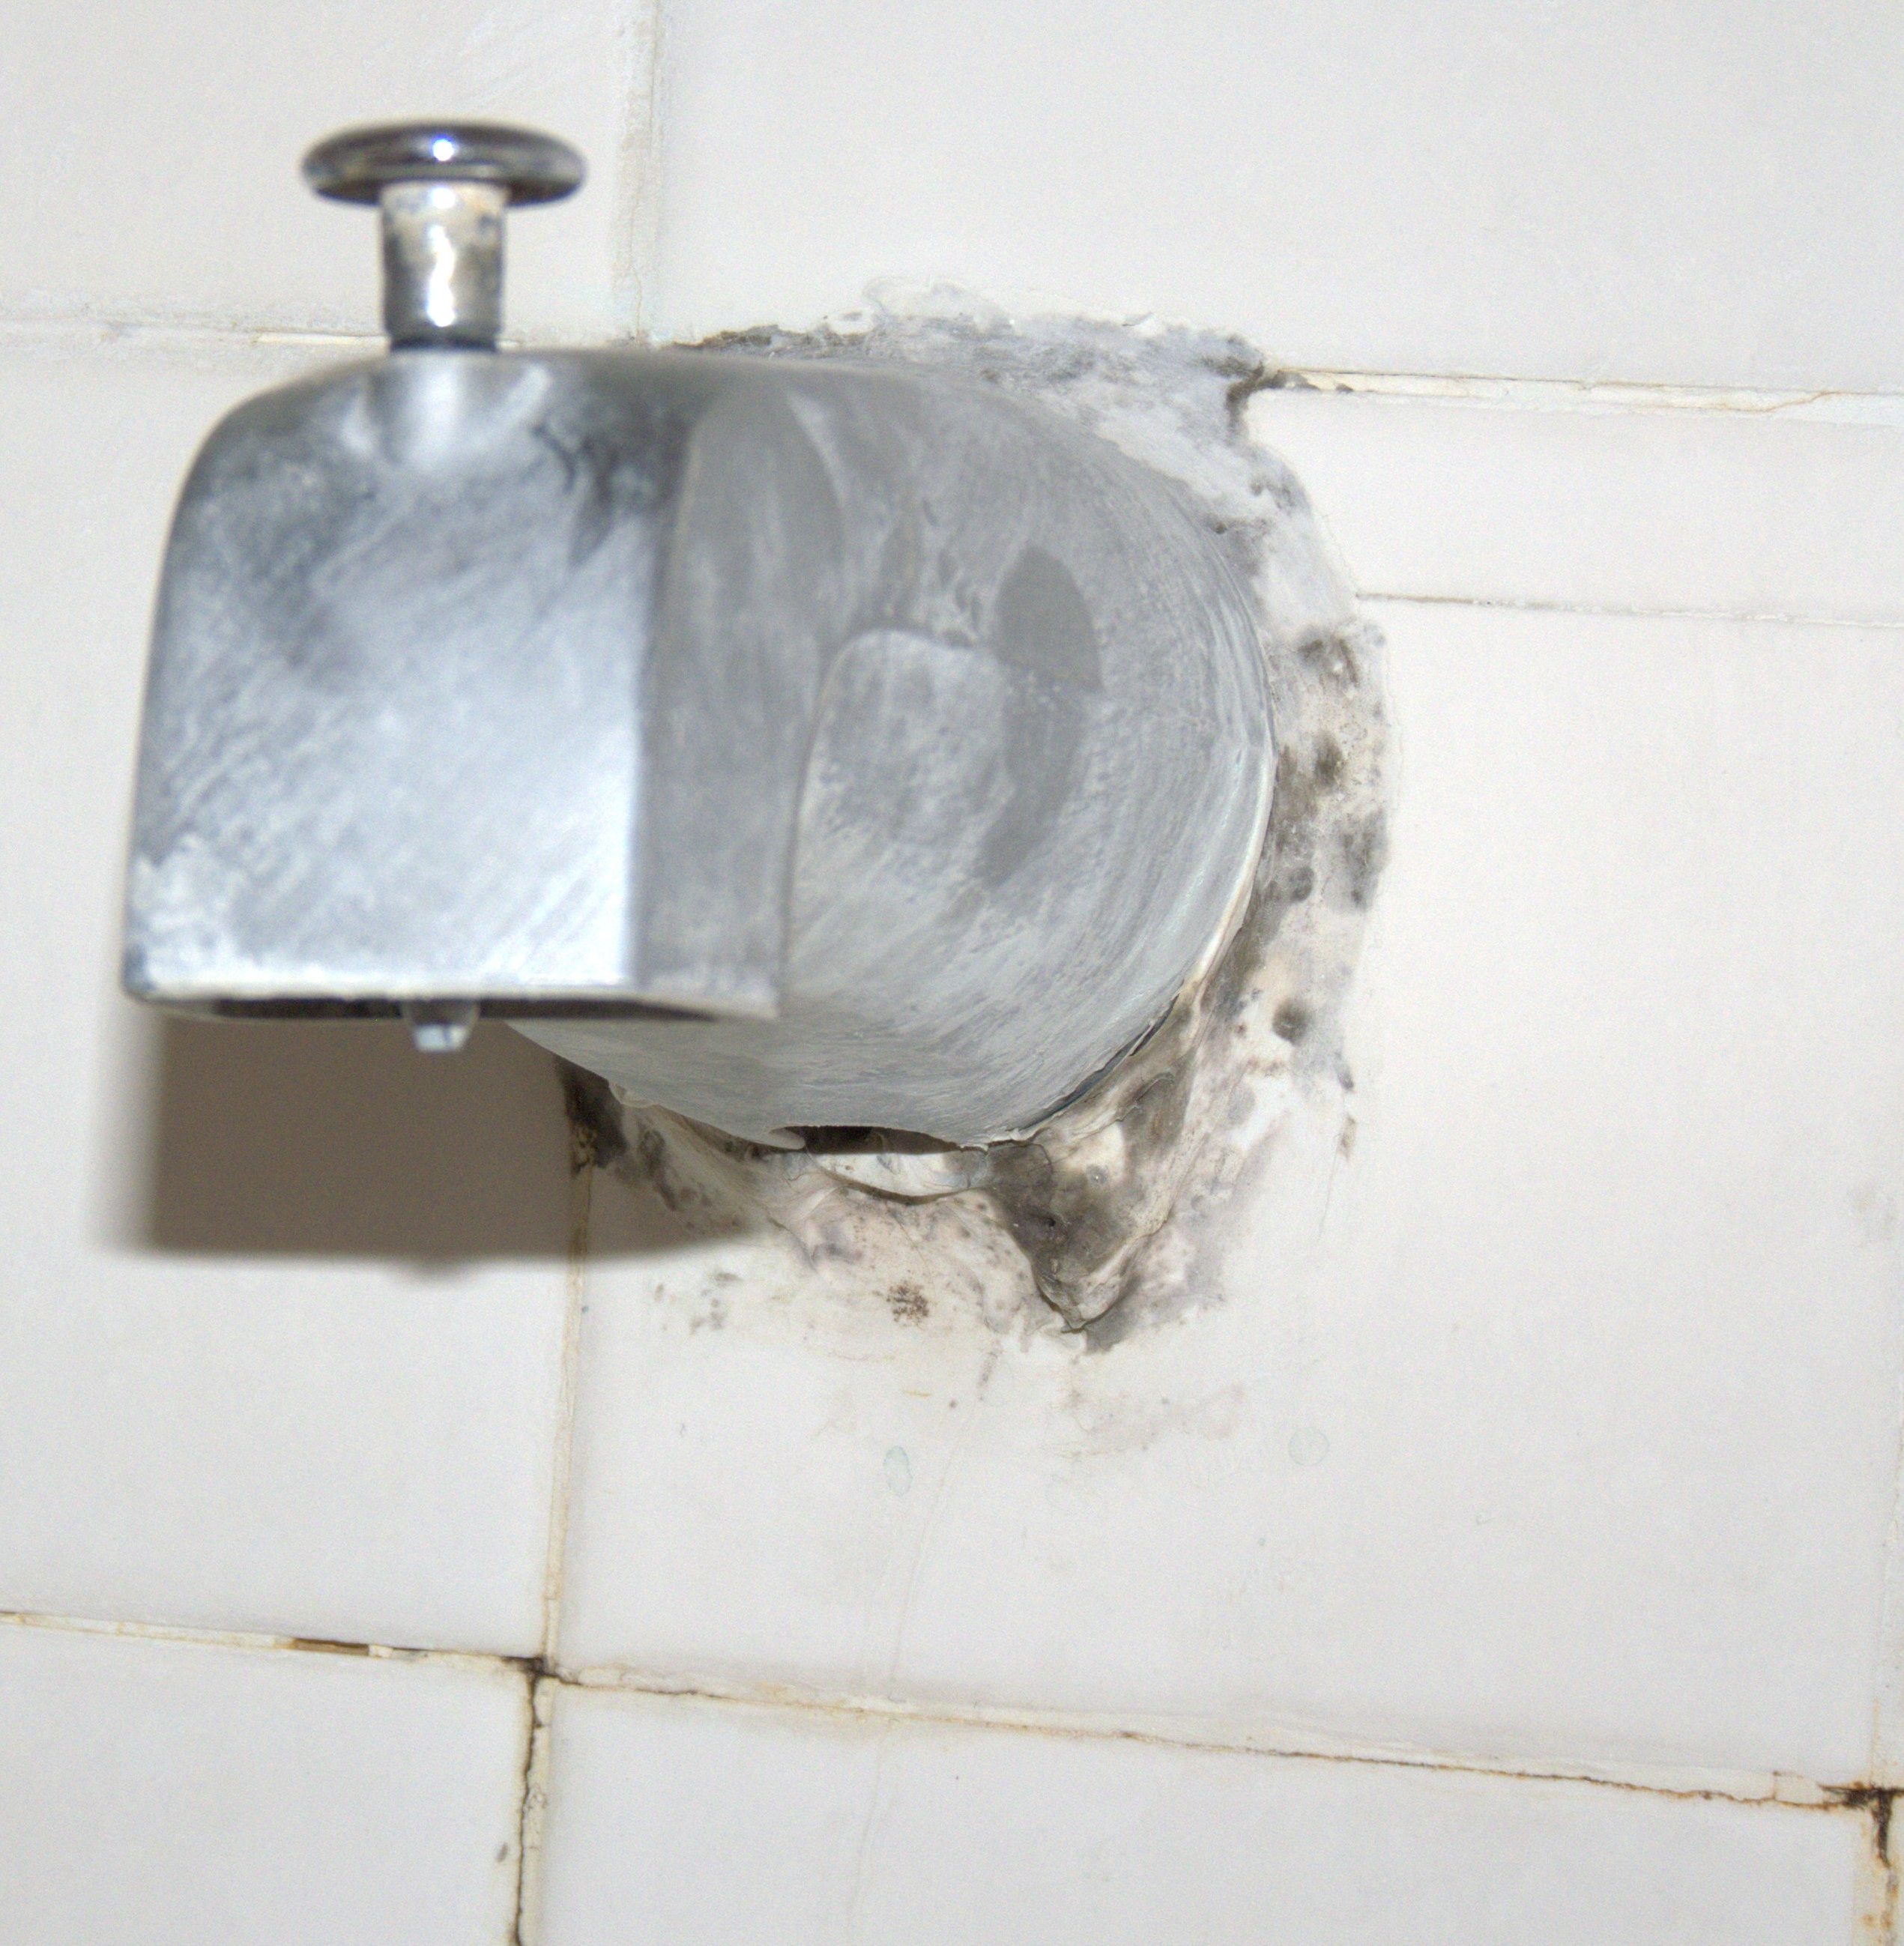 Faucet-bathroom-mold